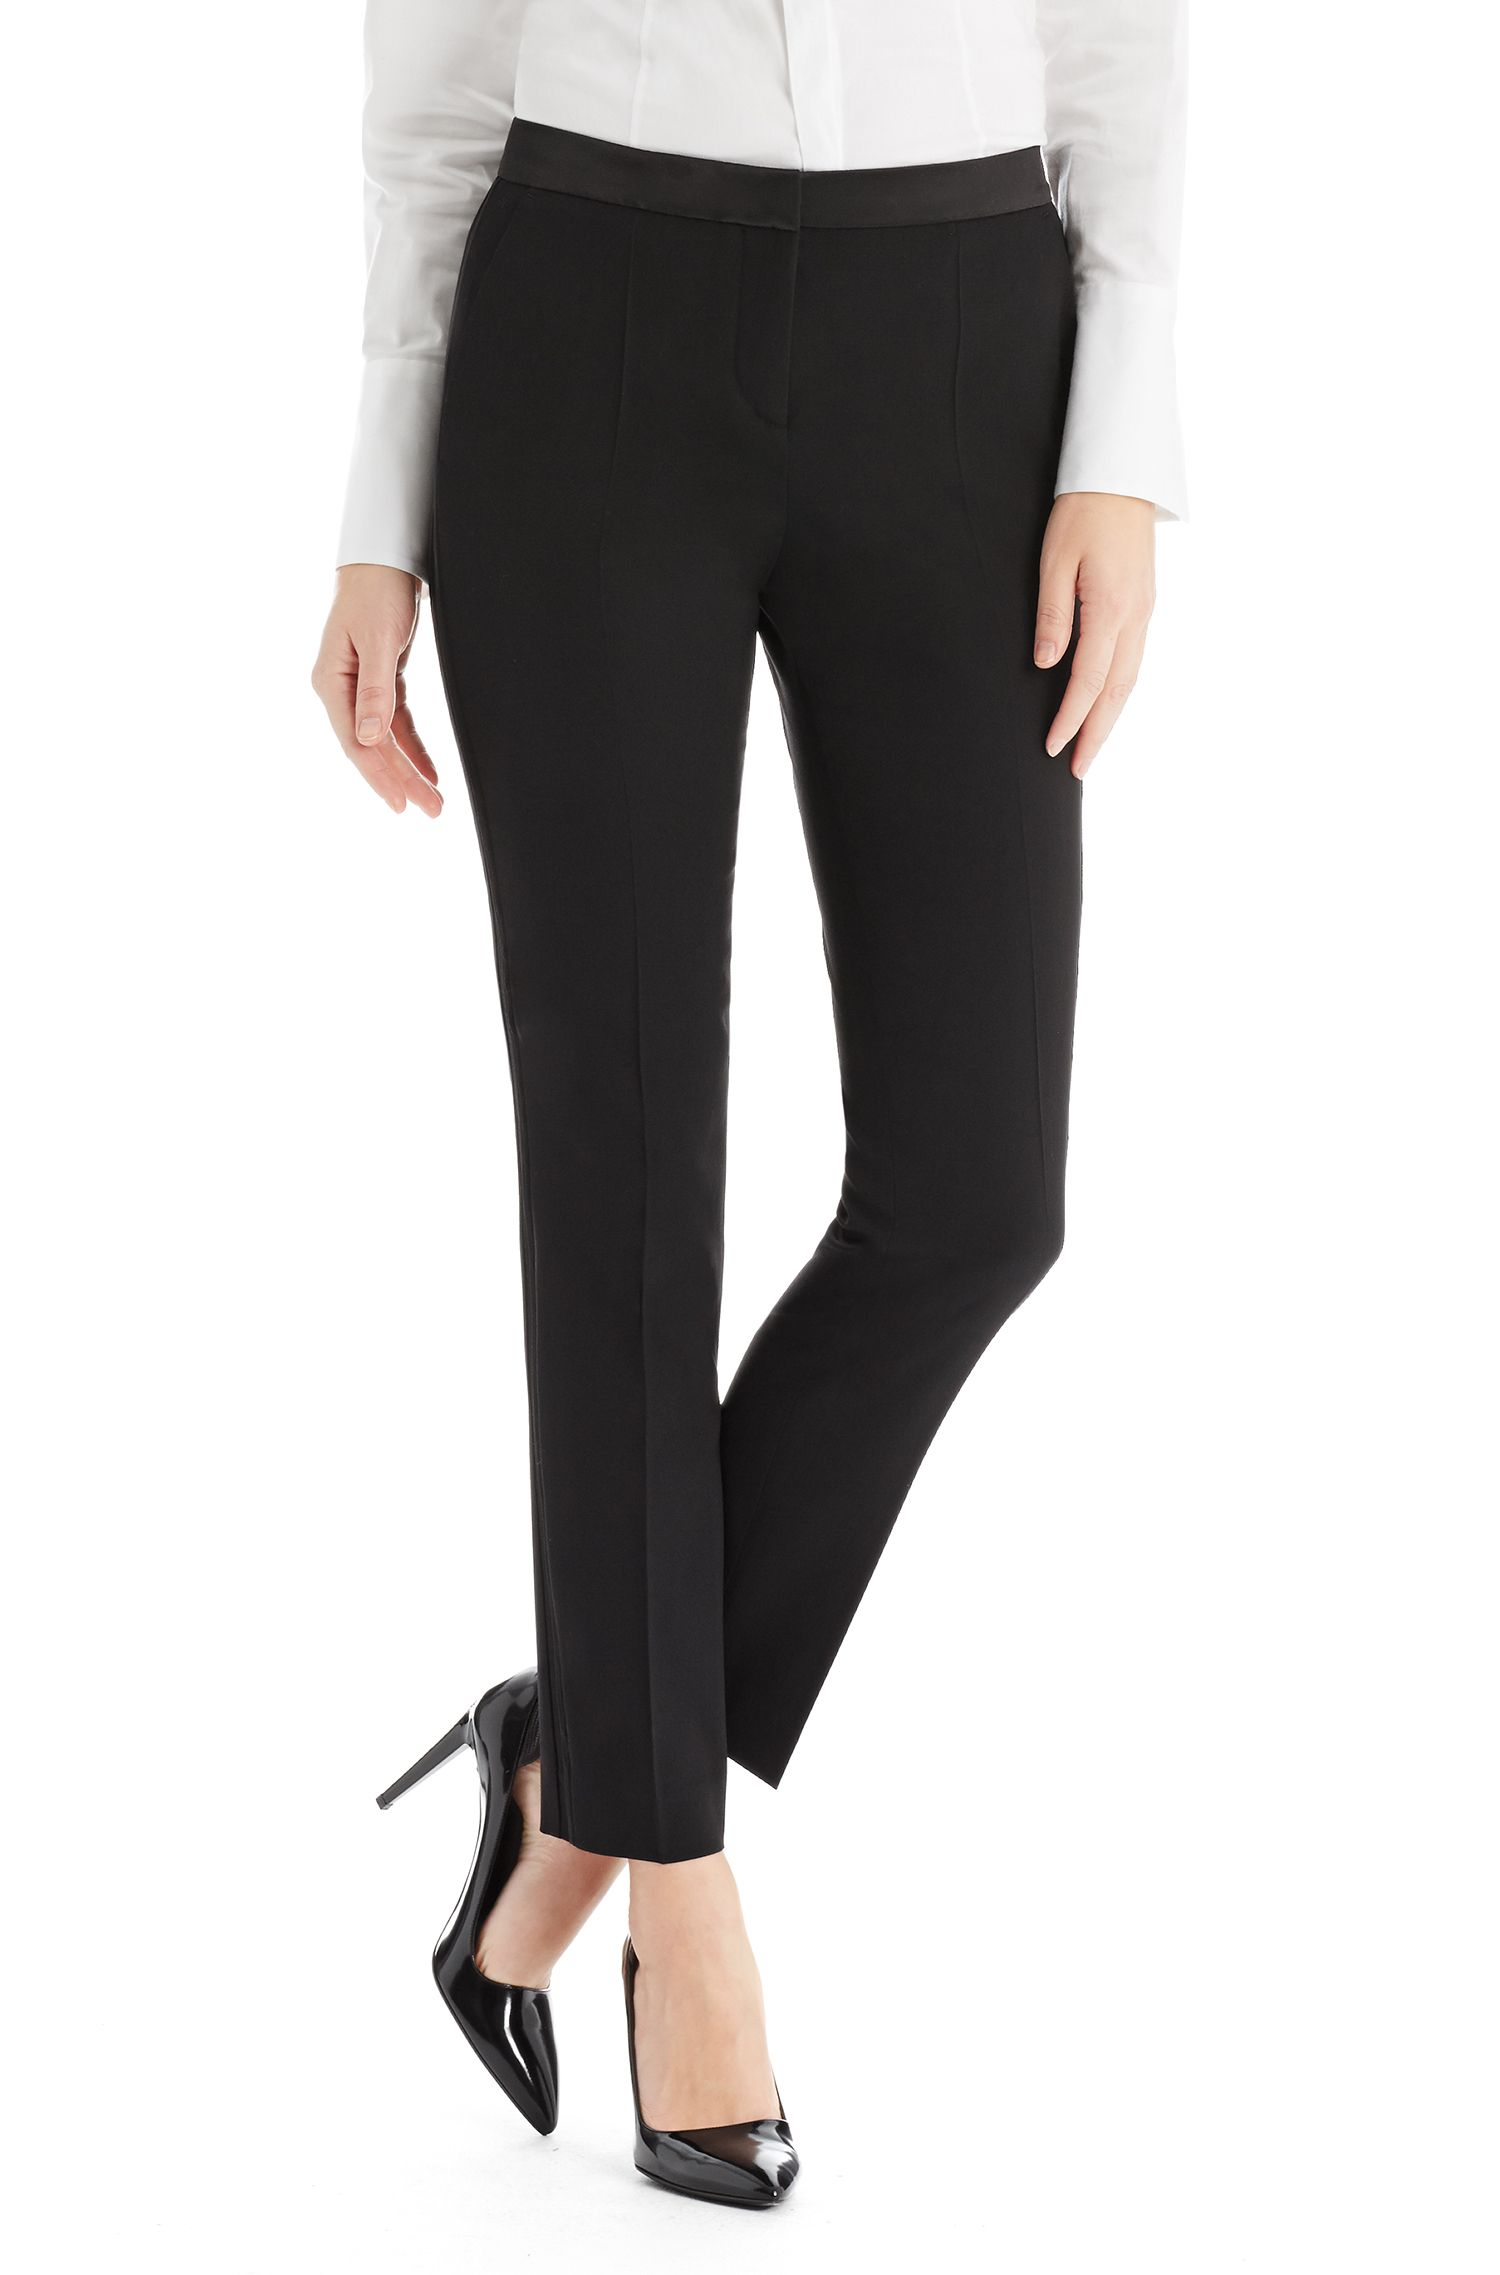 Find black dress pants at Macy's Macy's Presents: The Edit - A curated mix of fashion and inspiration Check It Out Free Shipping with $75 purchase + Free Store Pickup.